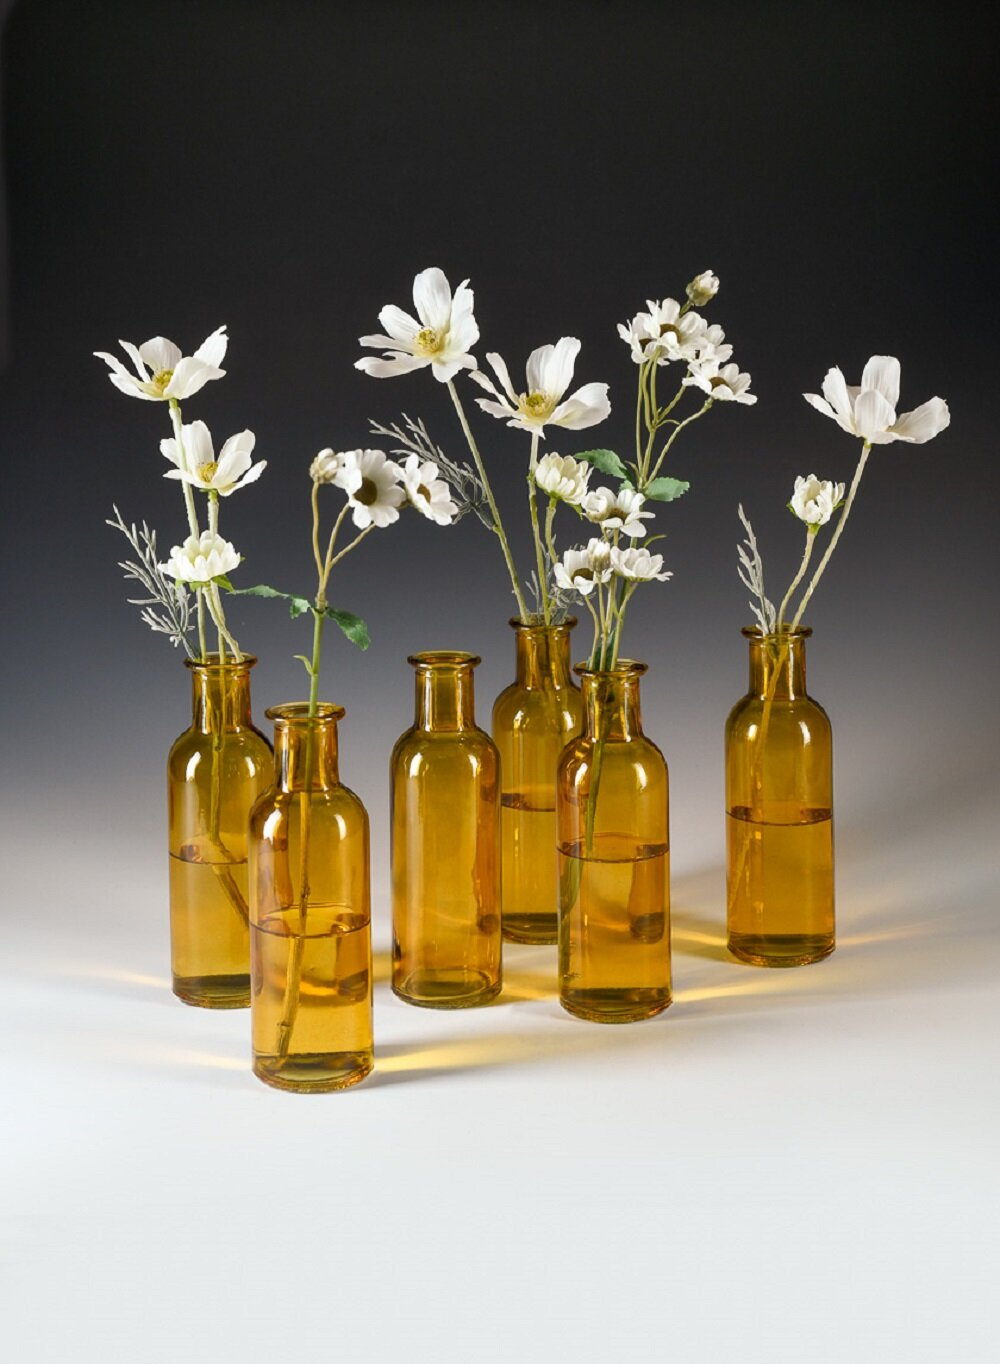 Rosalind Wheeler Bud Vases Apothecary Jars Decorative Glass Bottles Centerpiece For Wedding Reception Elegant Vintage Flower Vases Medicine Bottles For Home Decor Large Green Set Of 6 Wayfair Ca